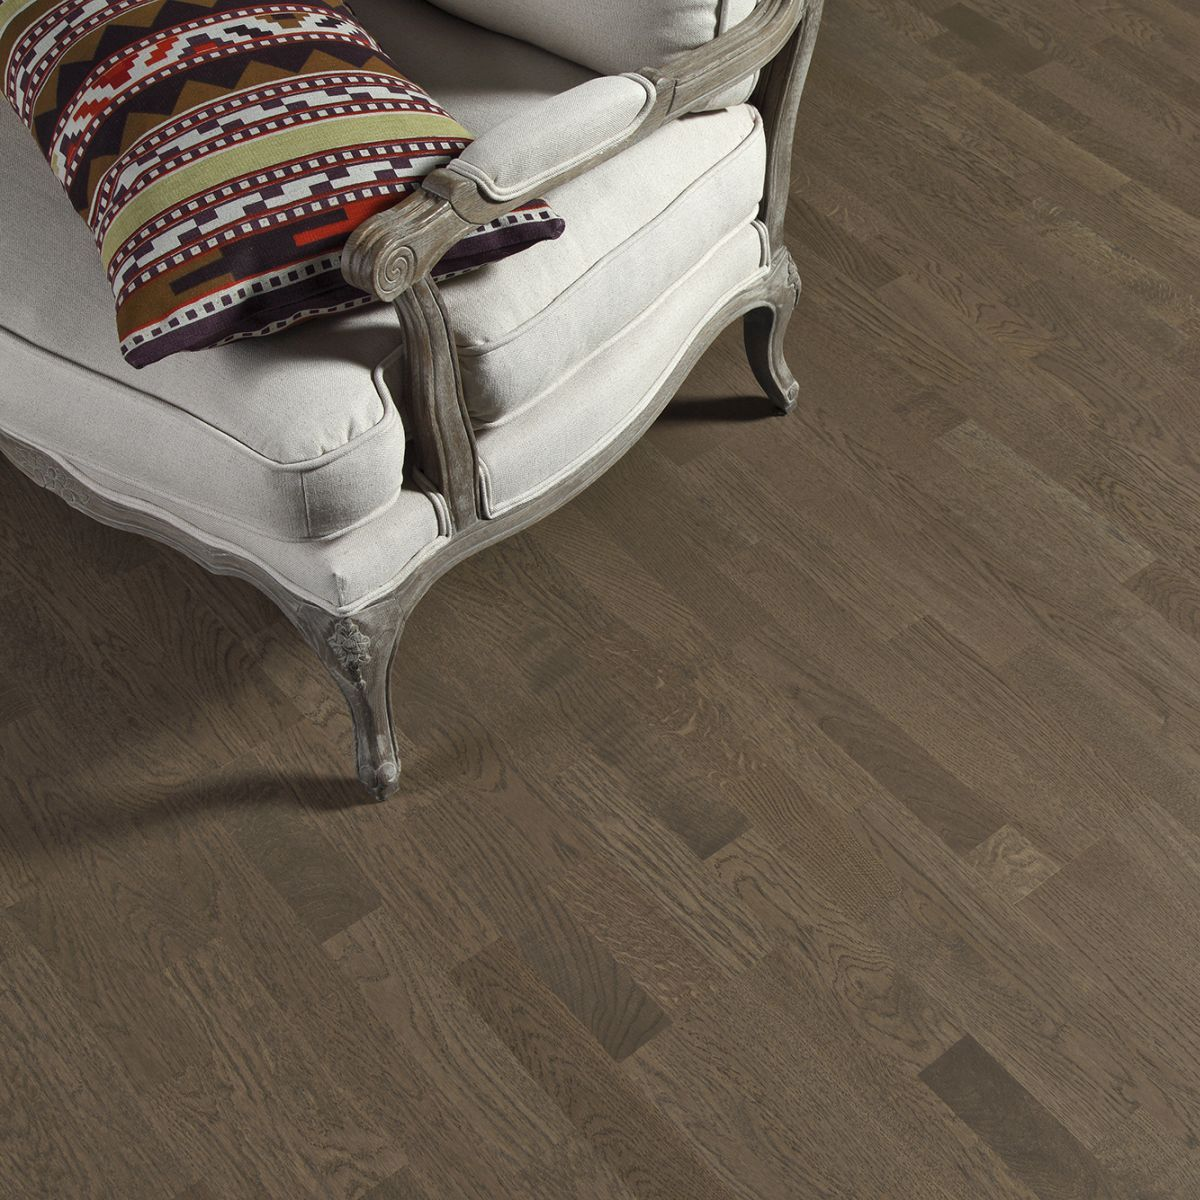 Tarkett Shade Ek Stone Grey Tres Br 3-Stav - Mattlack - Parkettgolv - 2281 MM - 14 MM